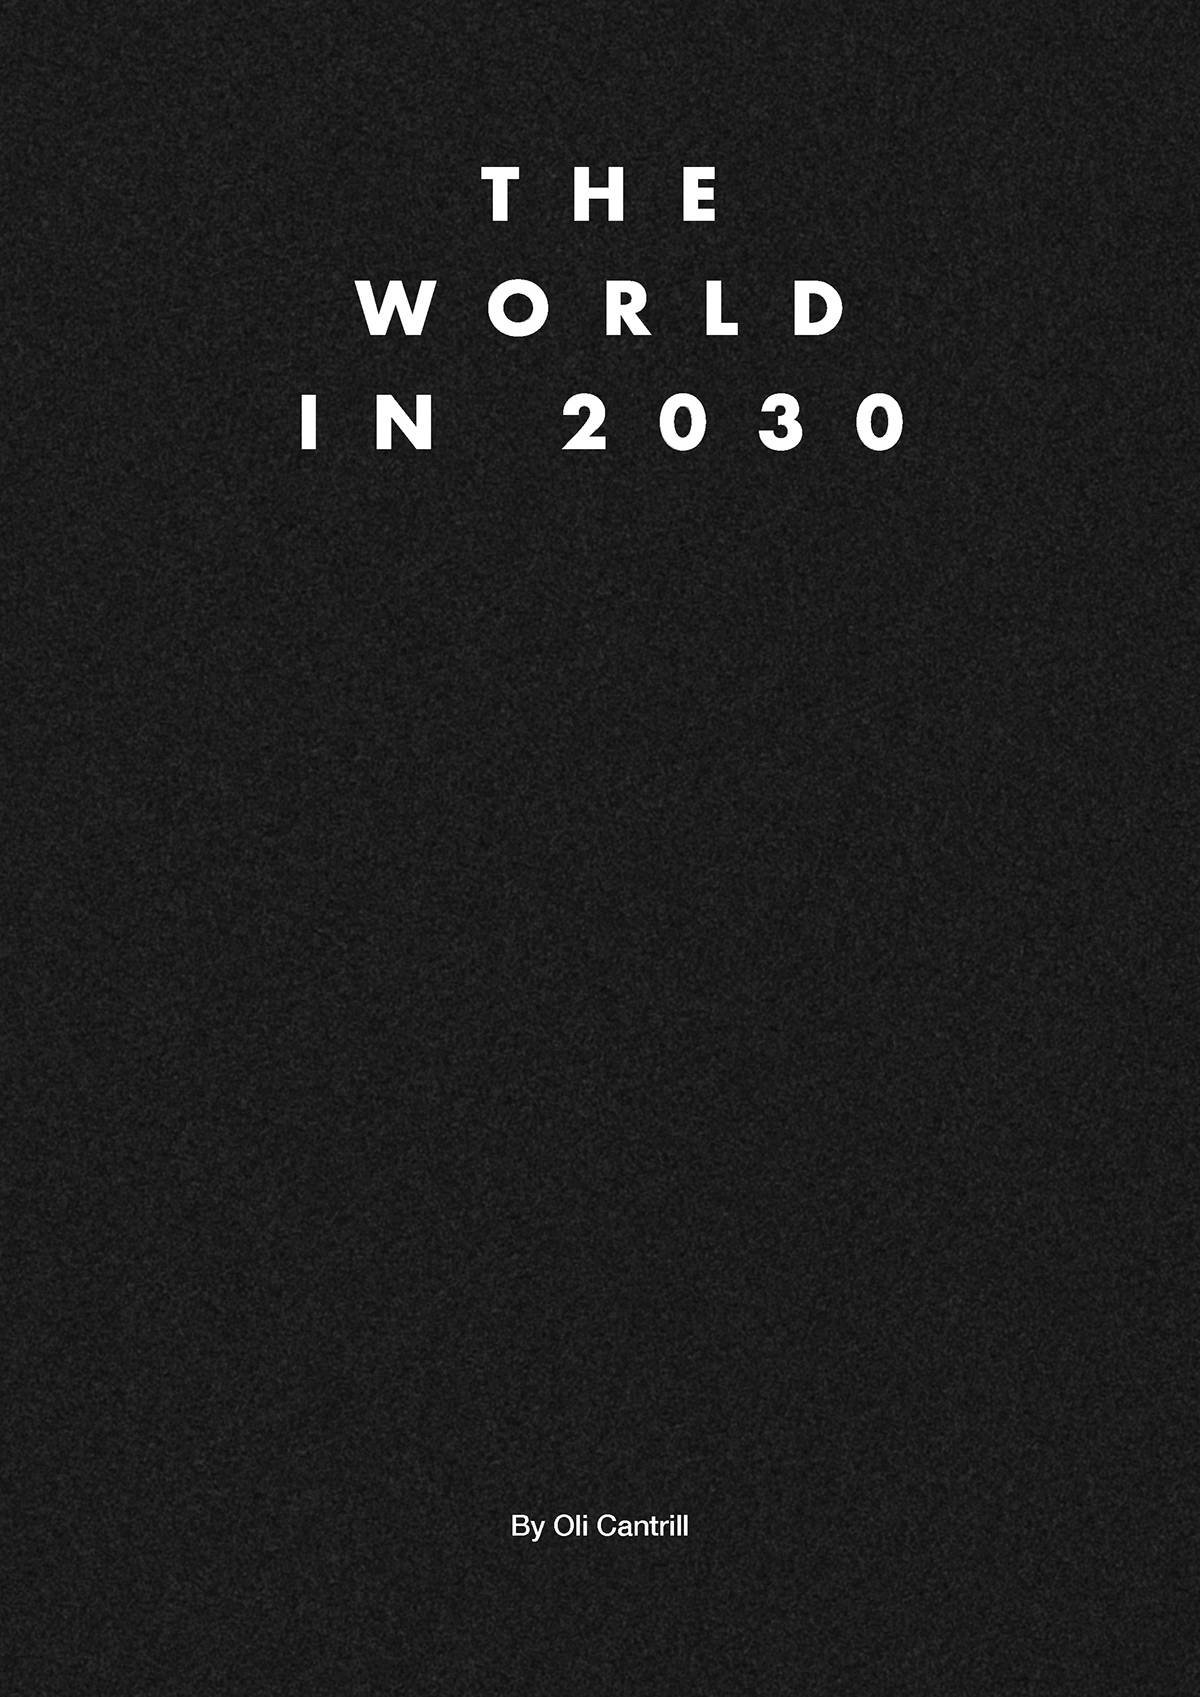 The World in 2030 on Behance